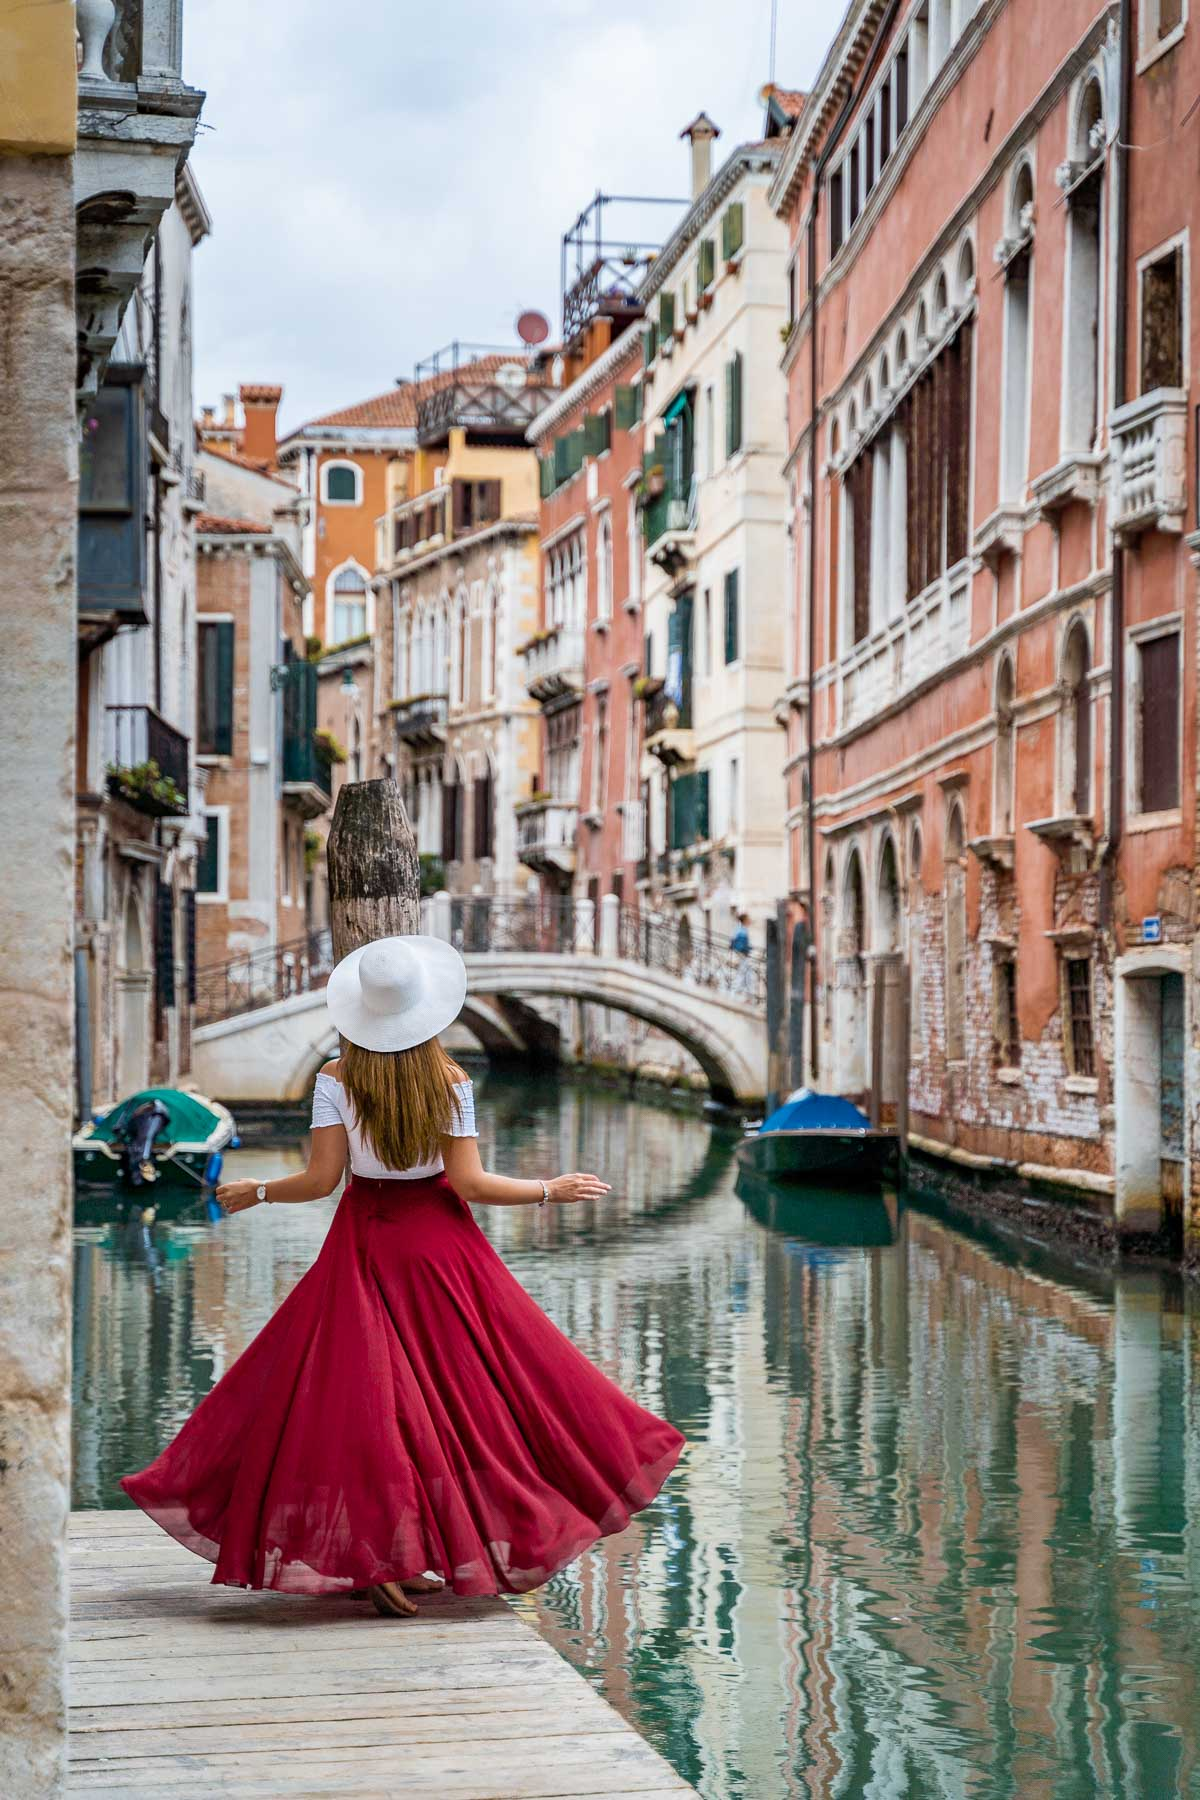 Girl in a red skirt twirling on a little pier along the canals in Venice